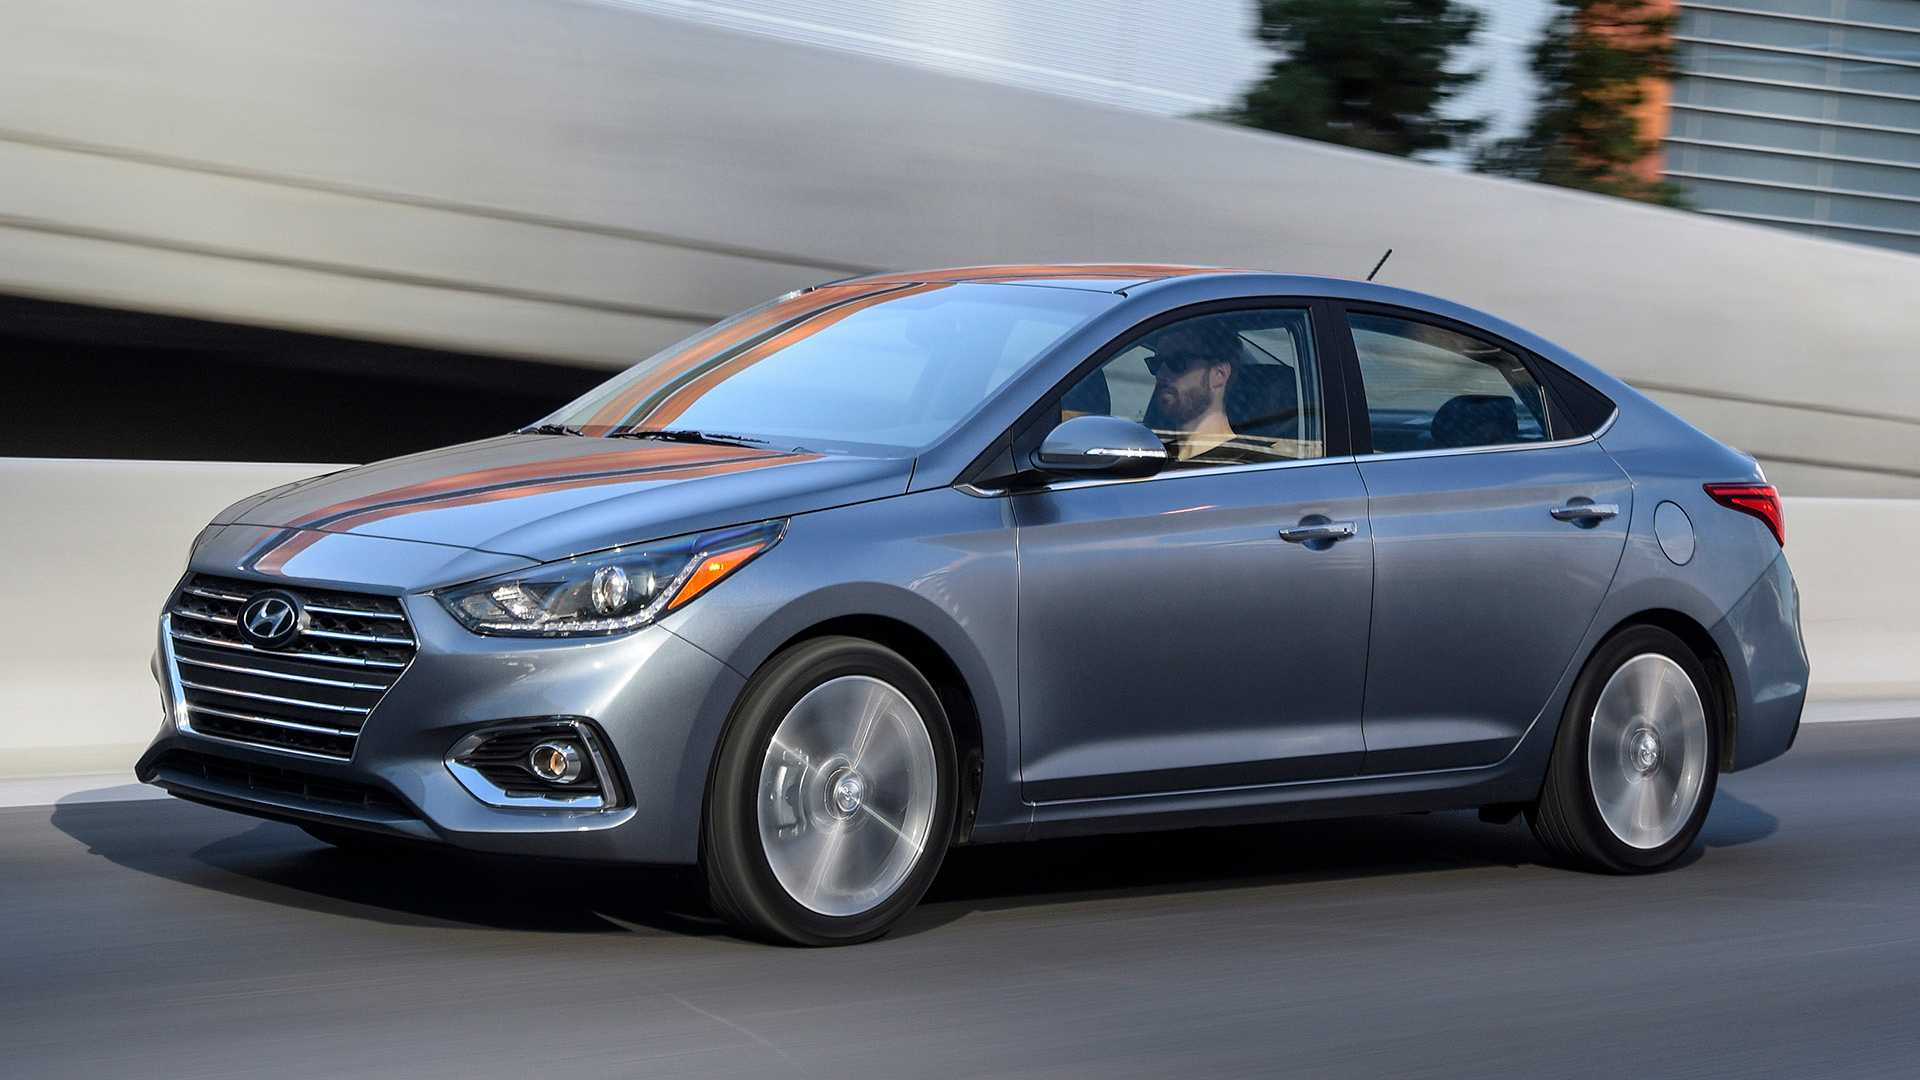 2020 hyundai accent gets new engine gearbox for better fuel economy 2020 hyundai accent gets new engine